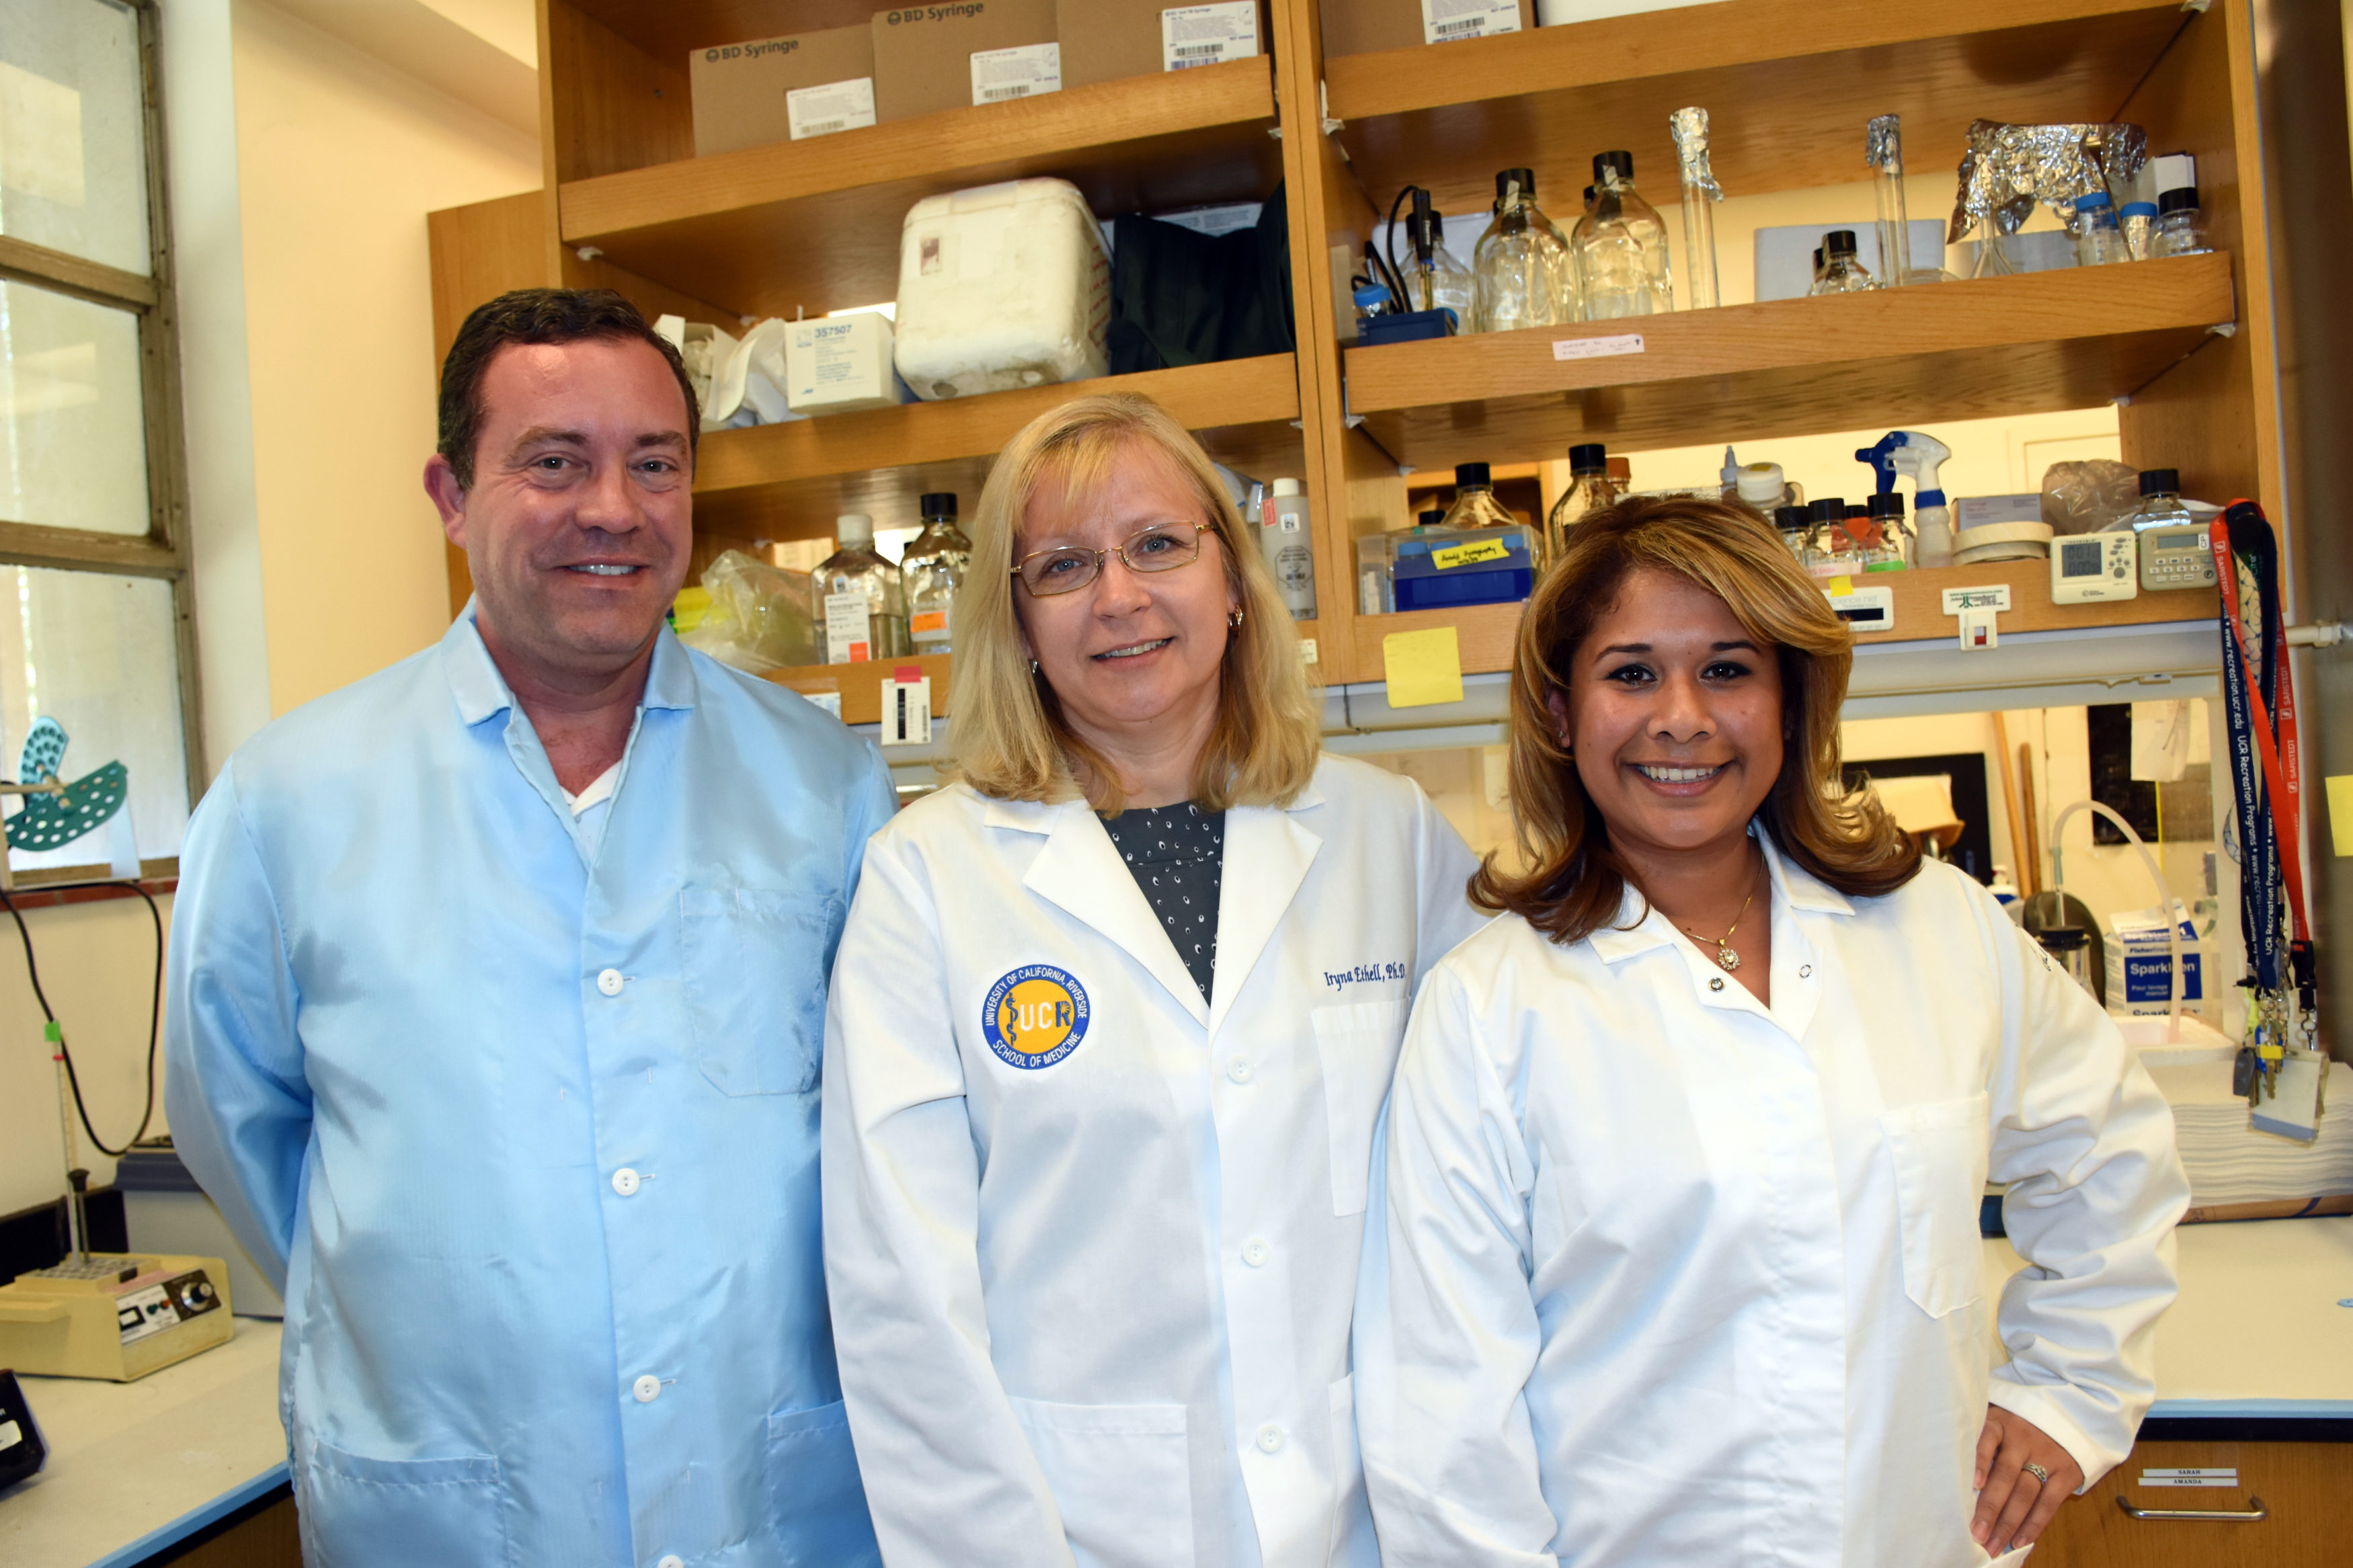 Devon Binder, PhD; Iryna Ethell, PhD, Patricia Pirbhoy, PhD, at UC Riverside School of Medicine